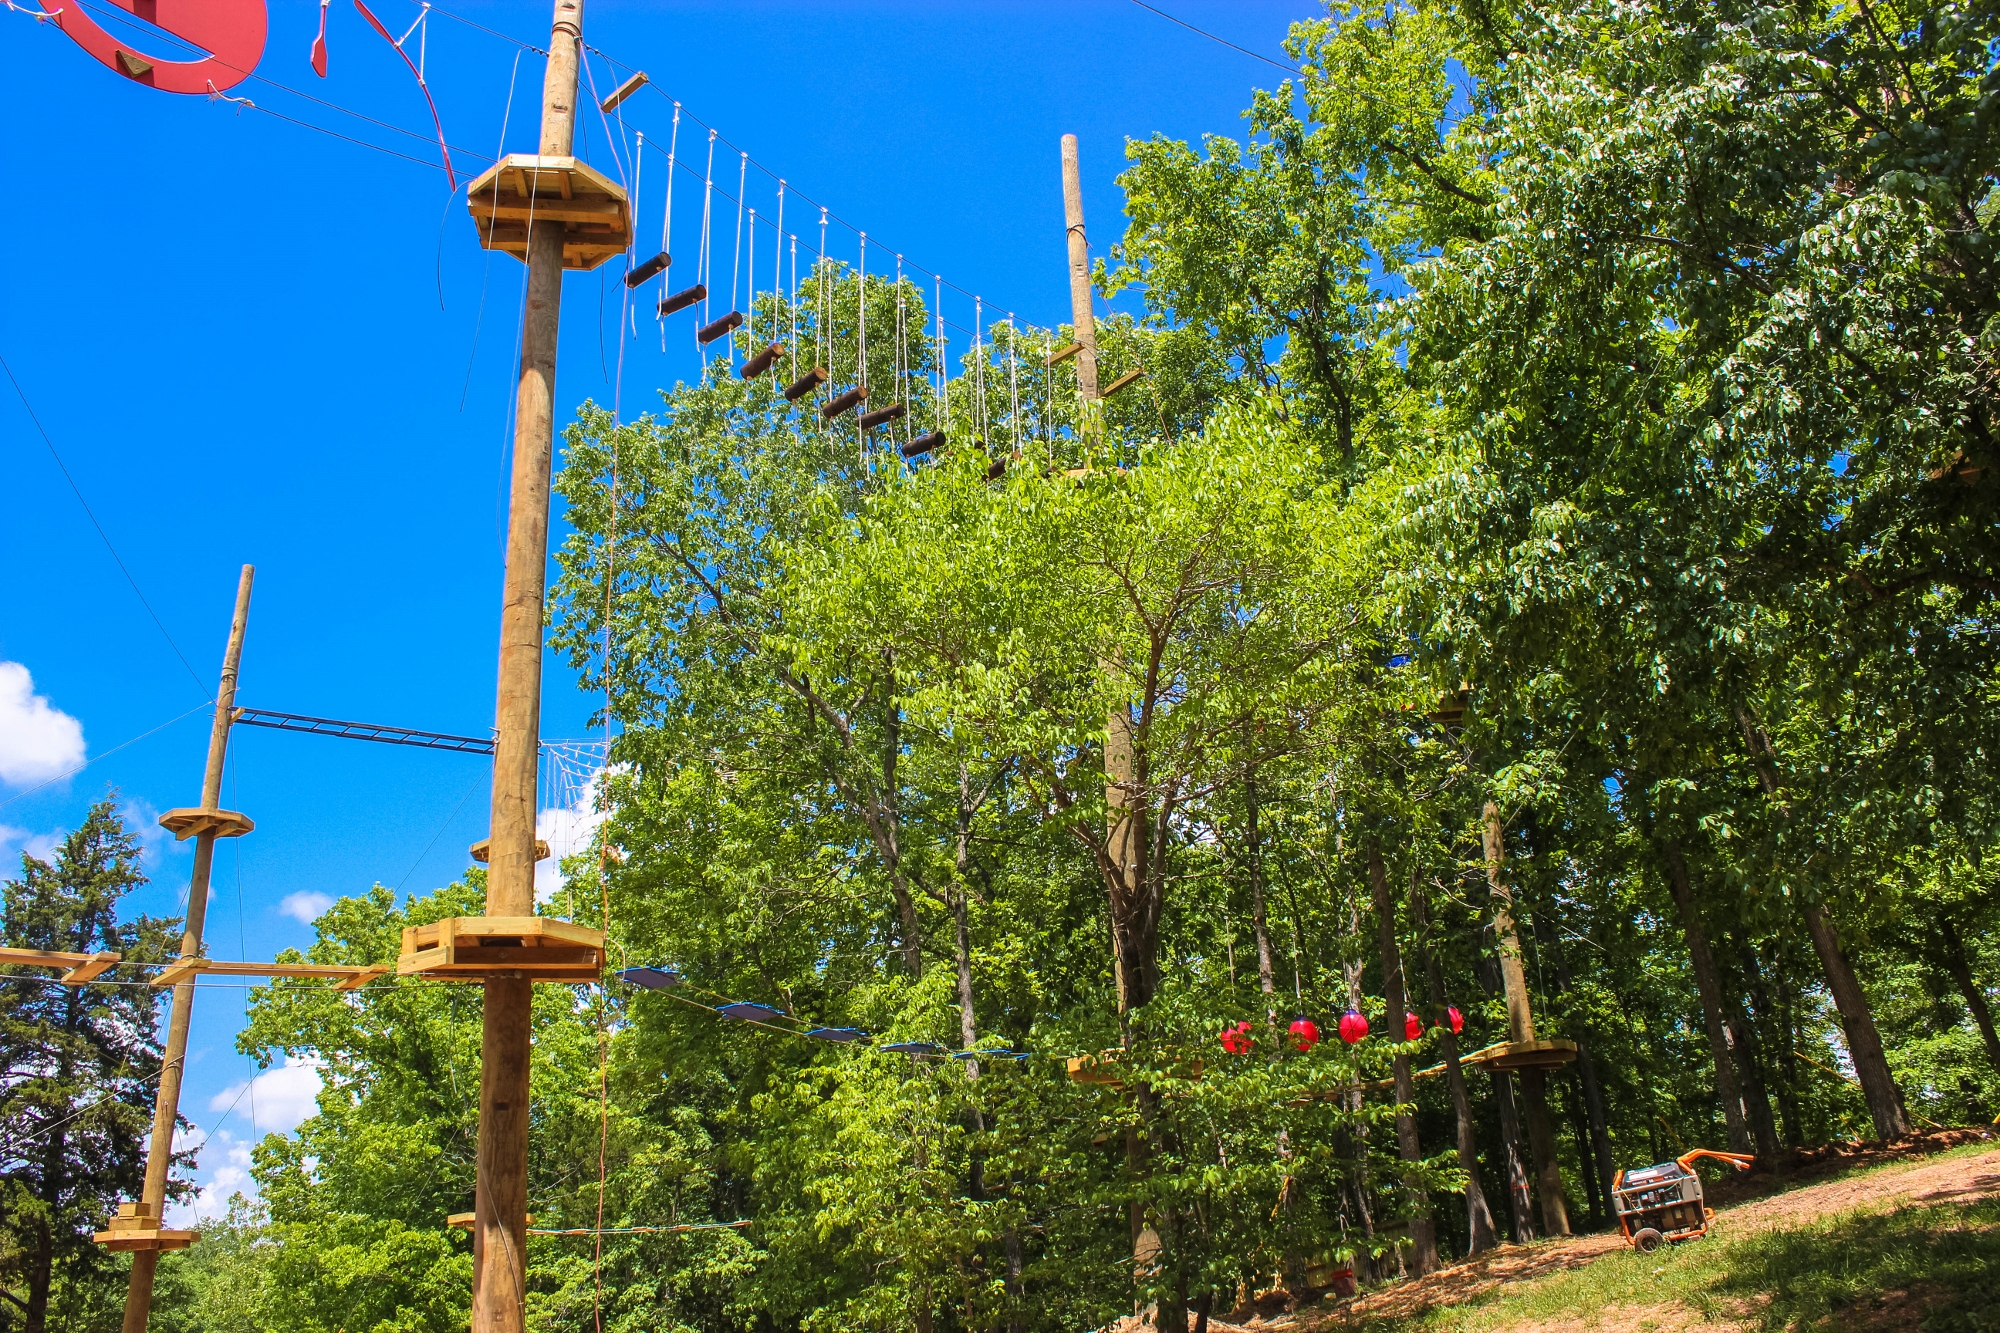 Aerial Park in Missouri near STL